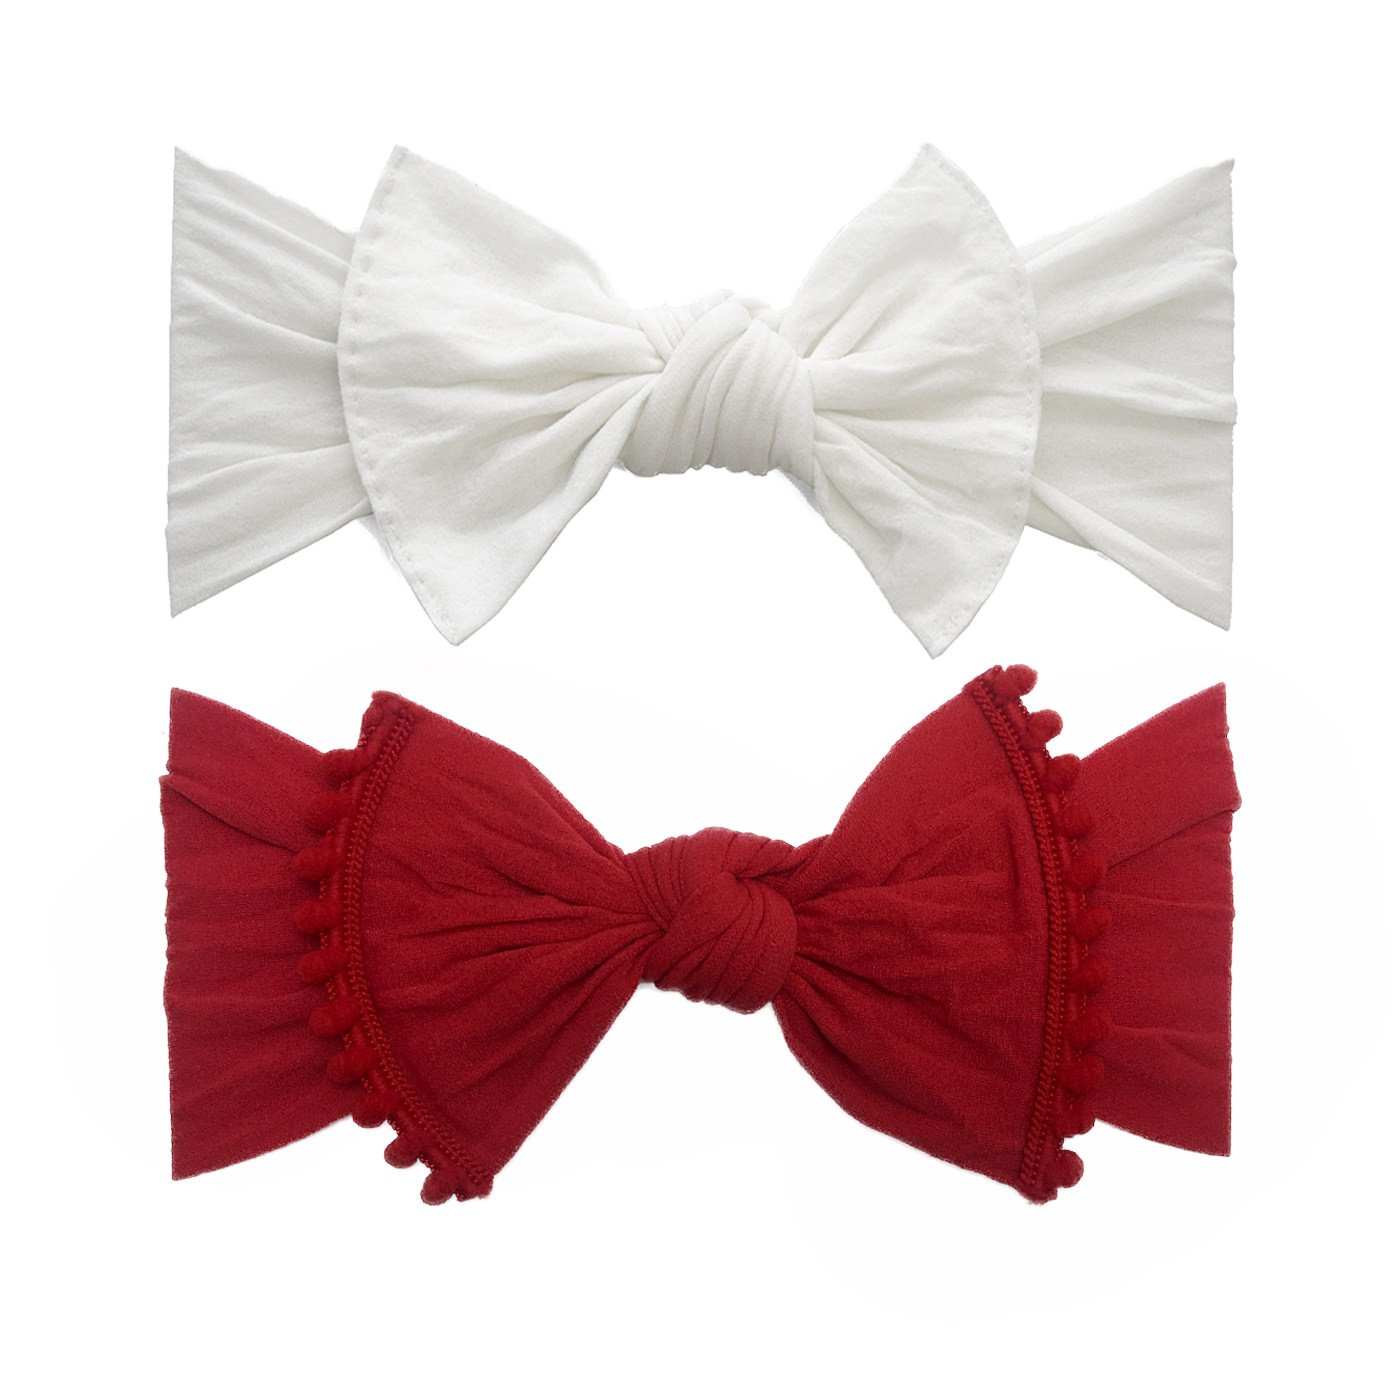 Baby Bling 2 Pack: Trimmed and Classic Knot Girls Baby Headbands 2PKTCKbpiv